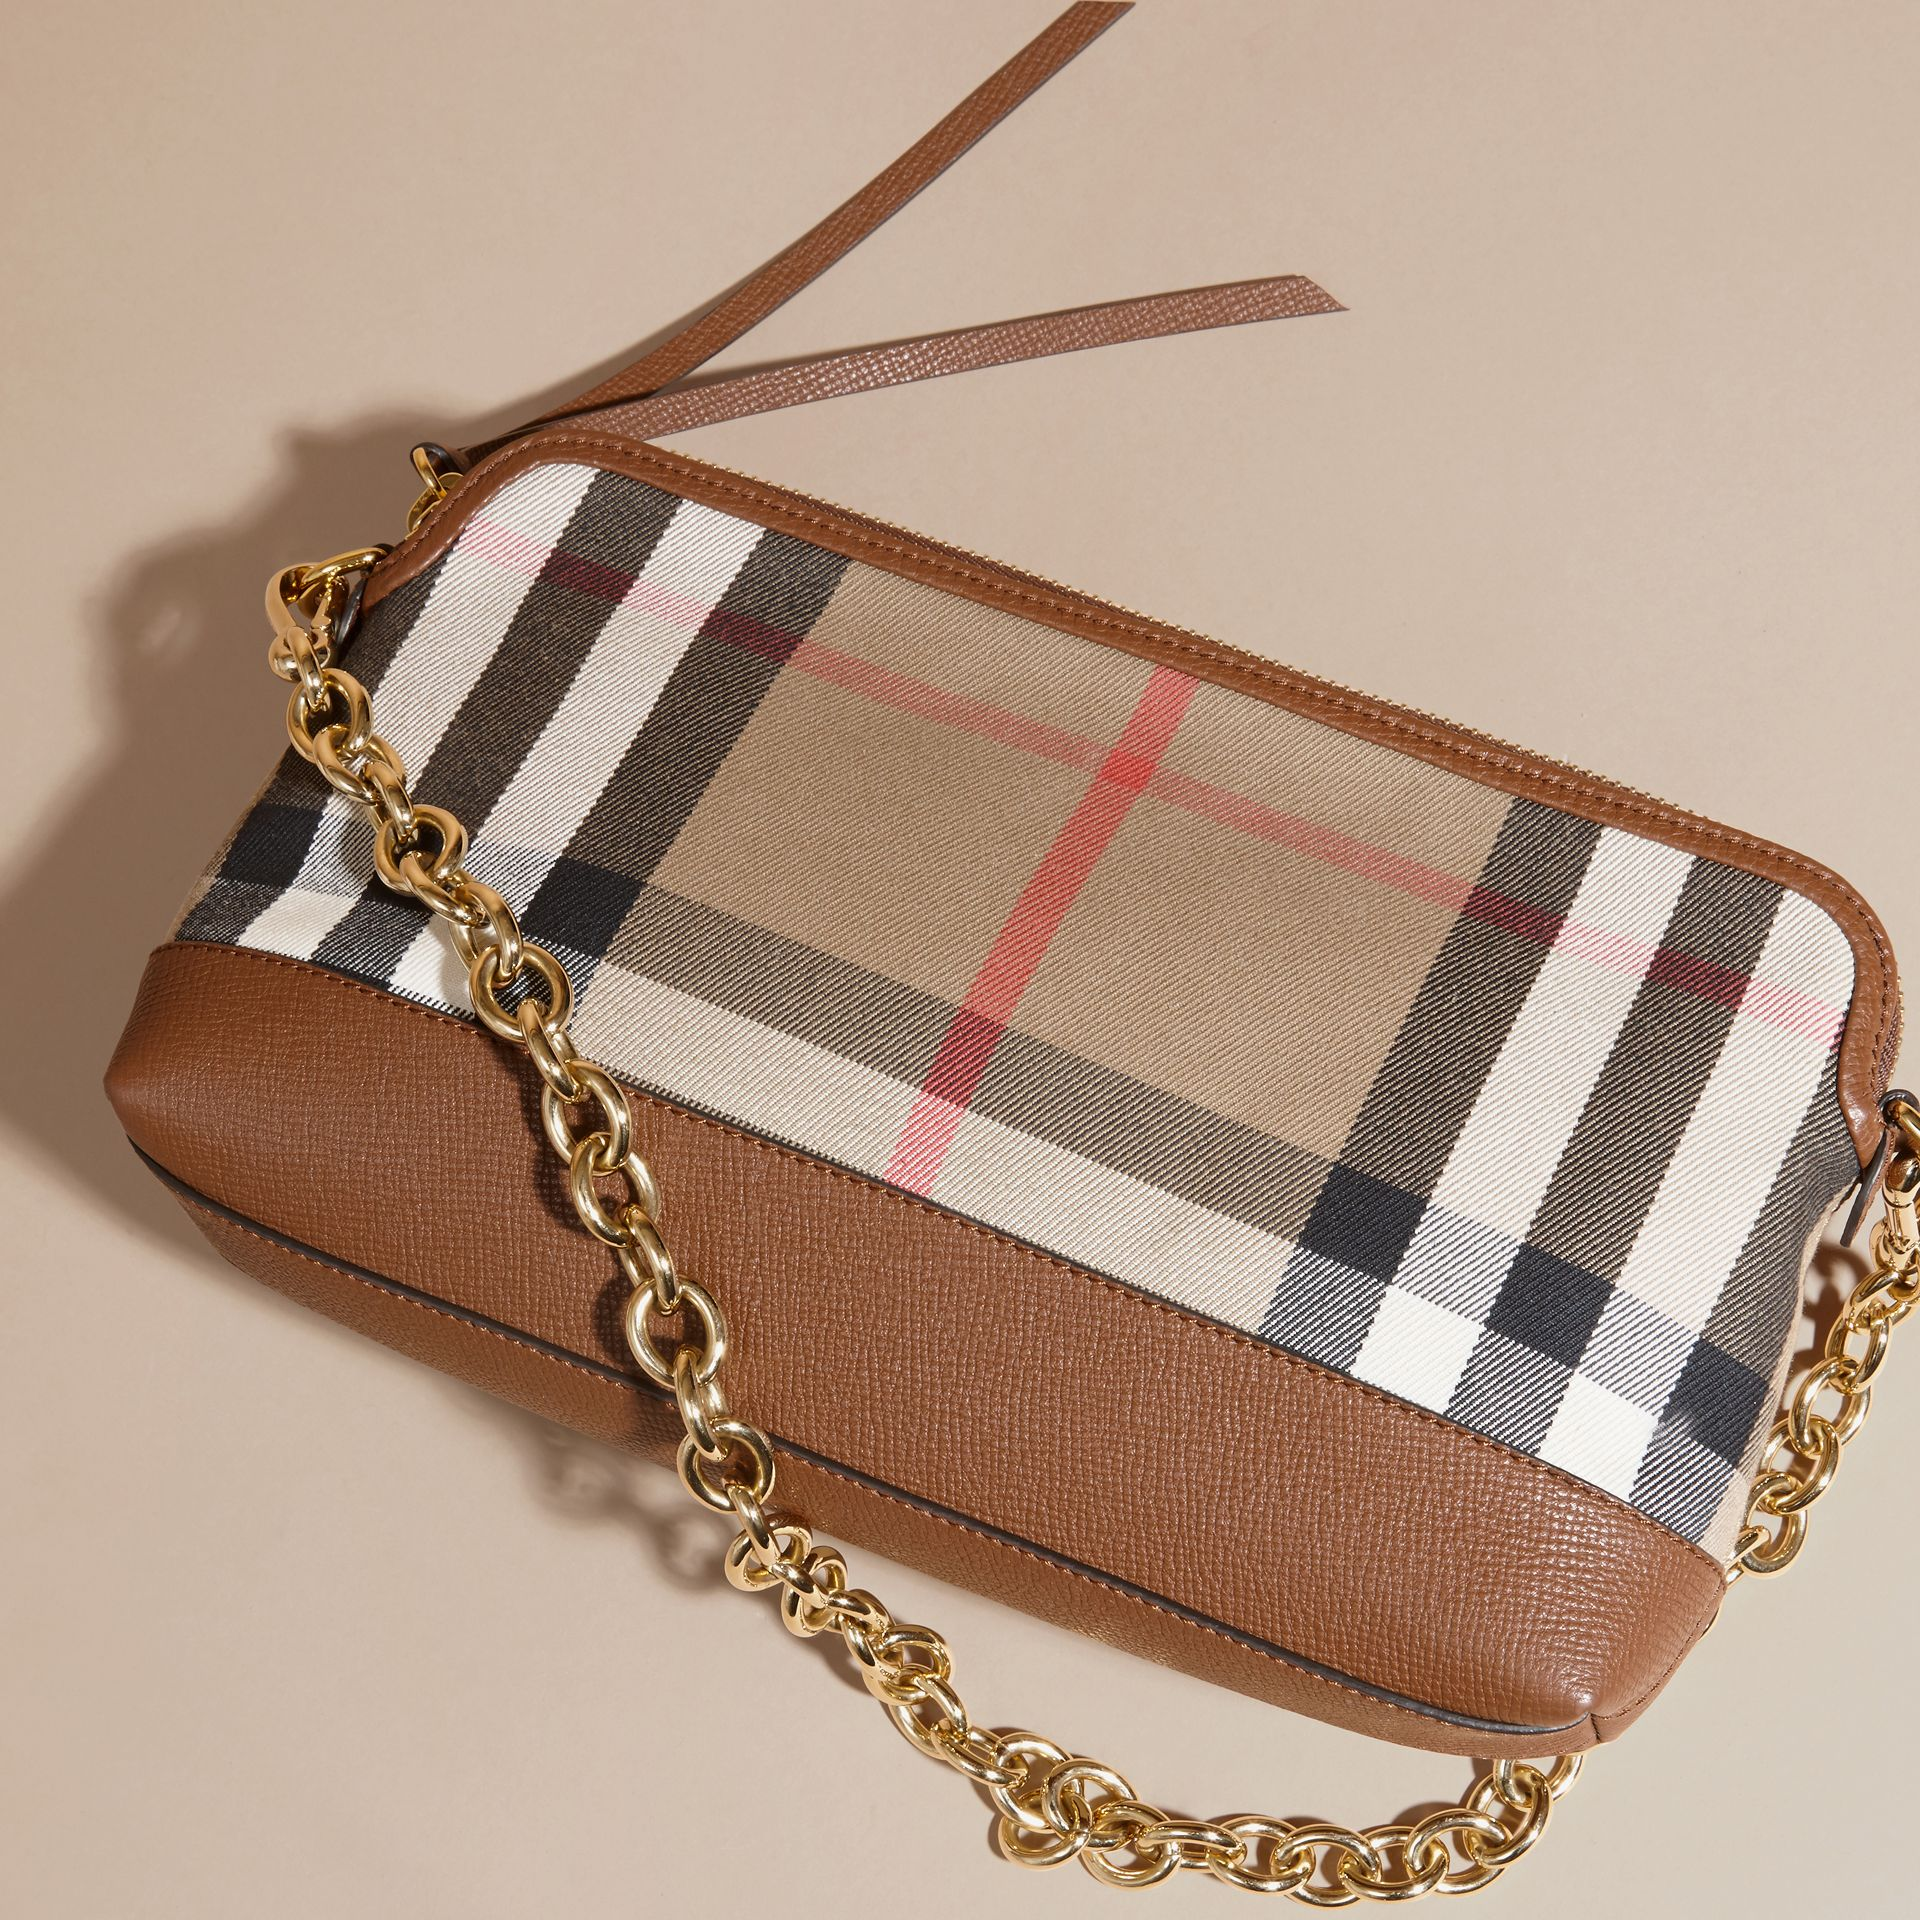 House Check and Leather Clutch Bag in Tan - gallery image 7